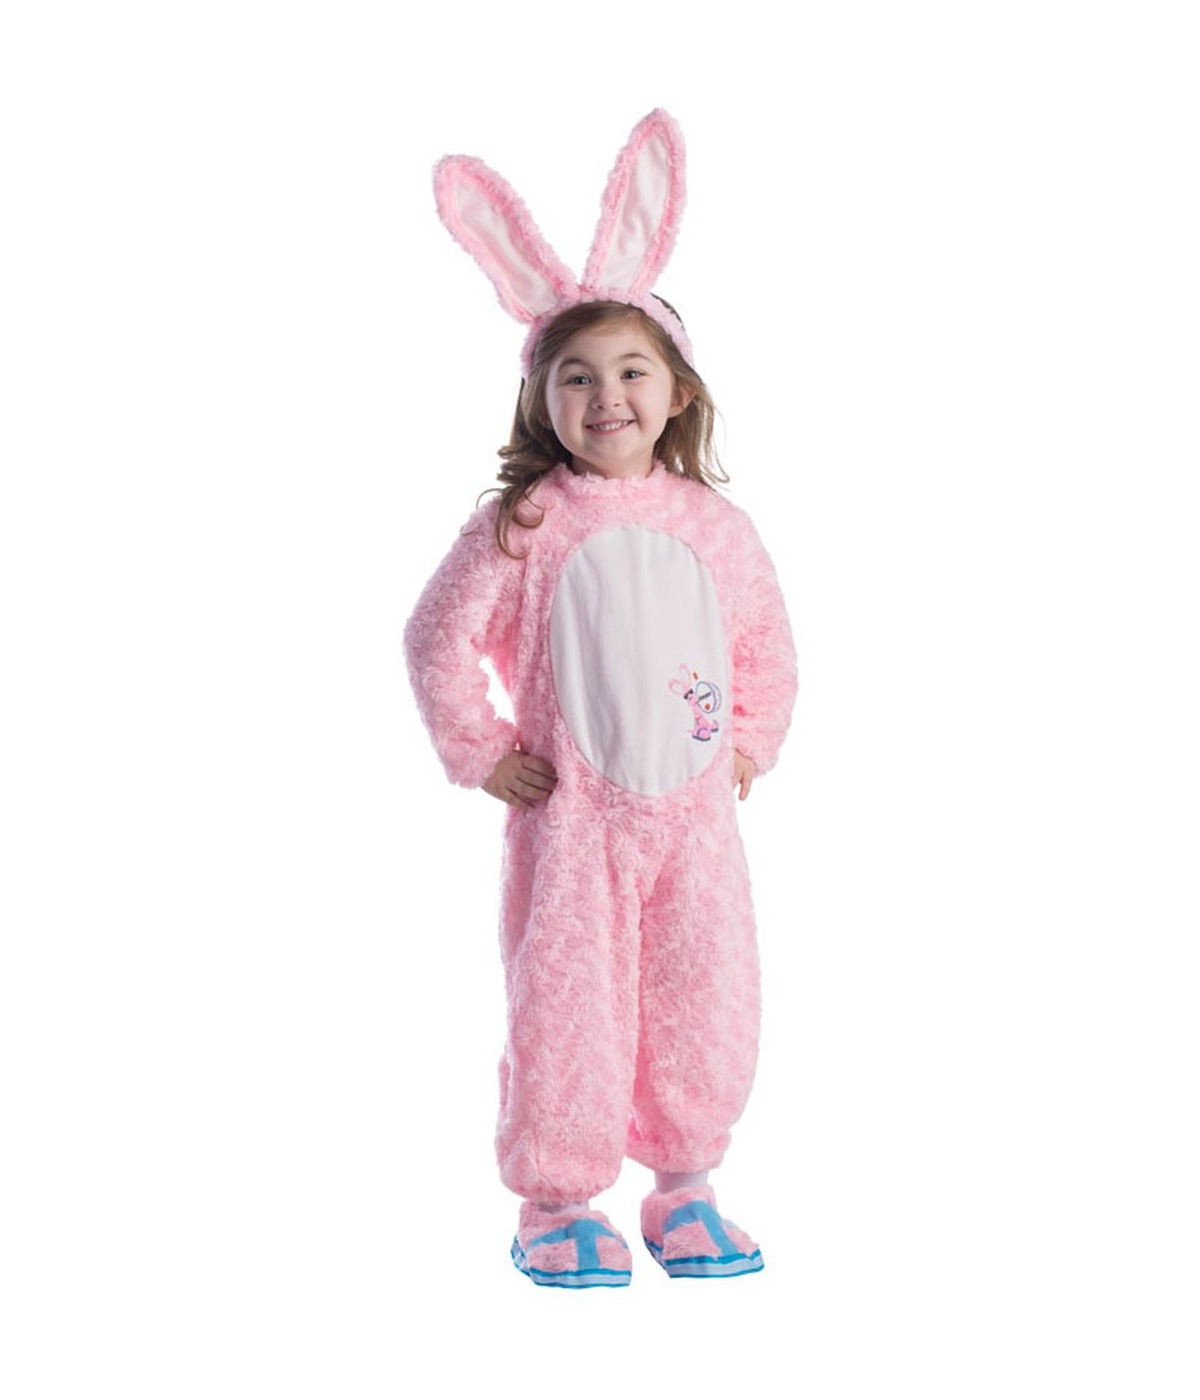 costumes kids costumes girl costume energizer pink bunny